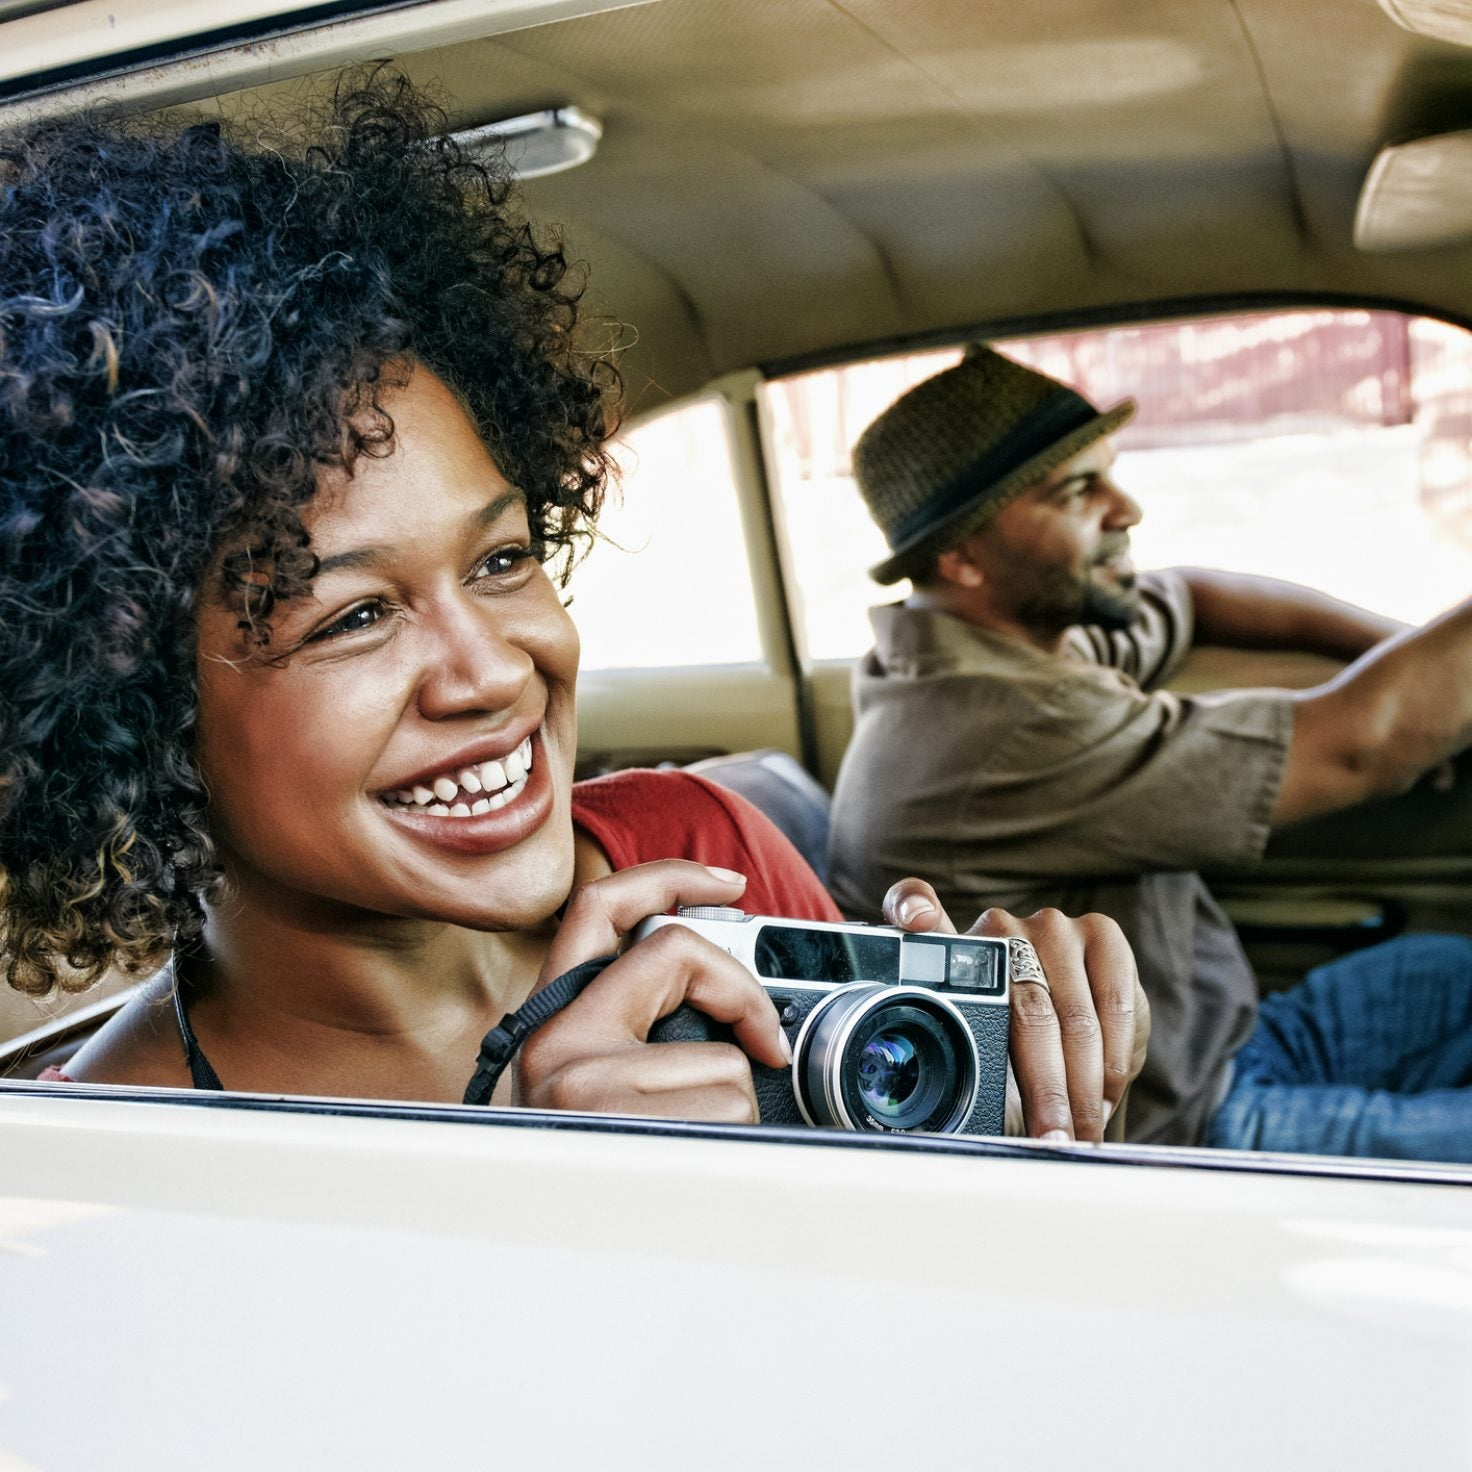 8 Essentials To Pack For Your Next Socially Distanced Road Trip